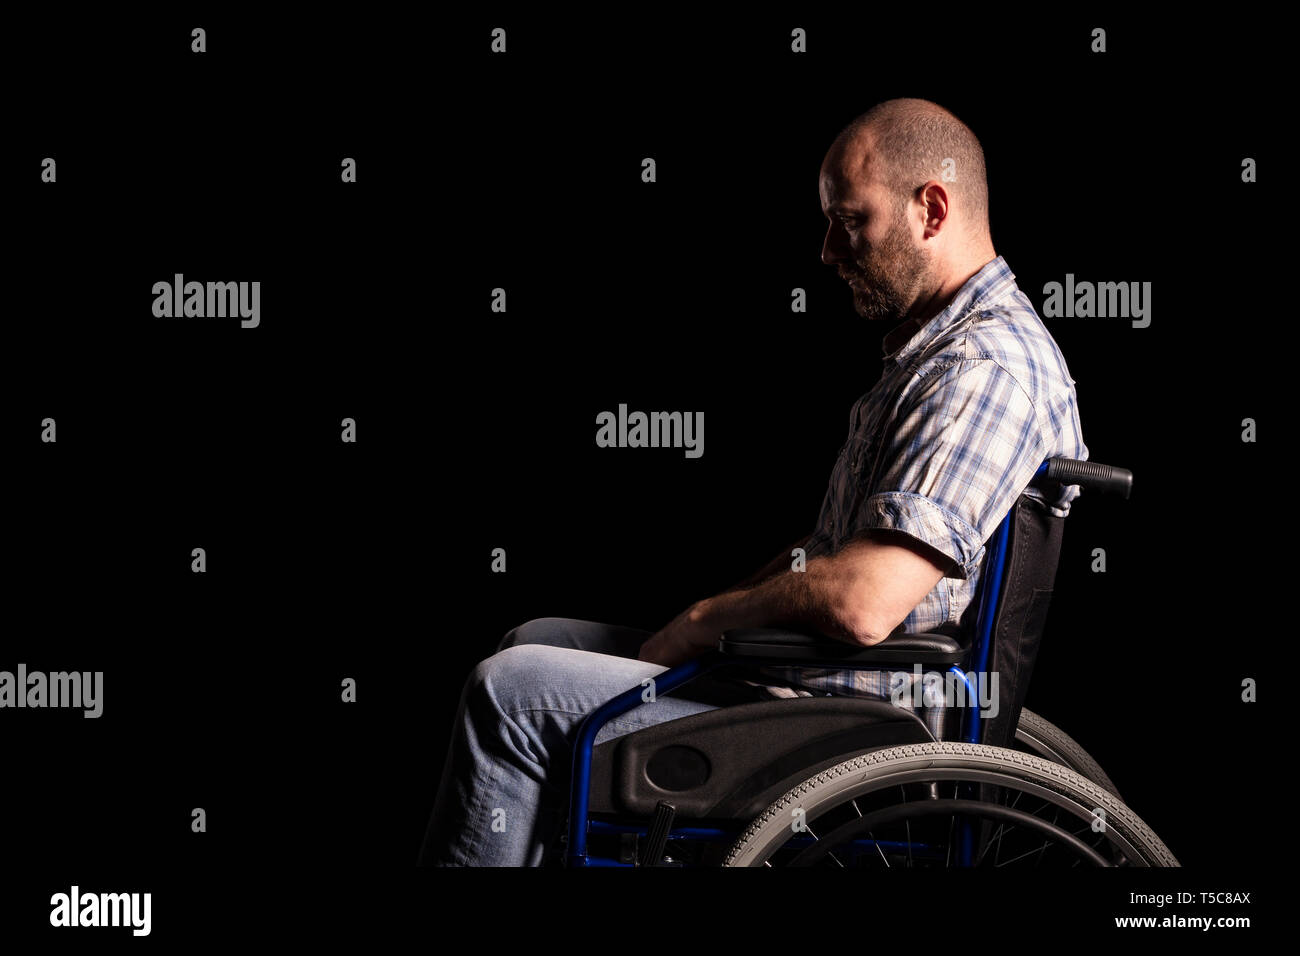 Portrait of caucasian man sitting in a wheelchair, sad and thoughtful expression. Black background. Concept of patient and physical disability. - Stock Image